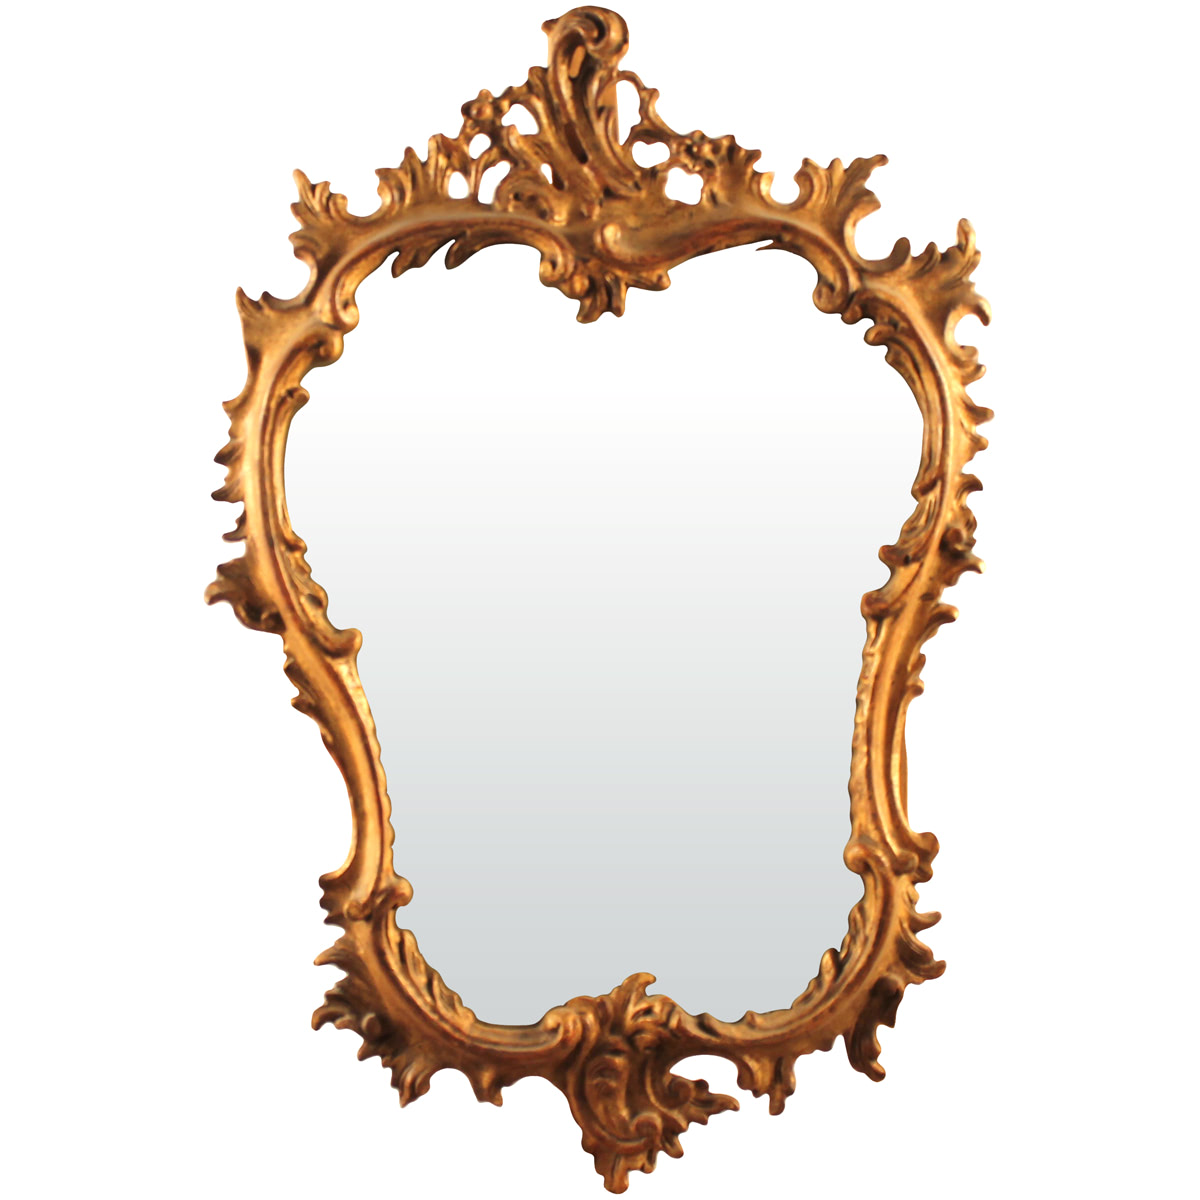 SPECCHIERA IN LEGNO SCOLPITO E DORATO-MIRROR IN CARVED AND GOLDEN WOOD